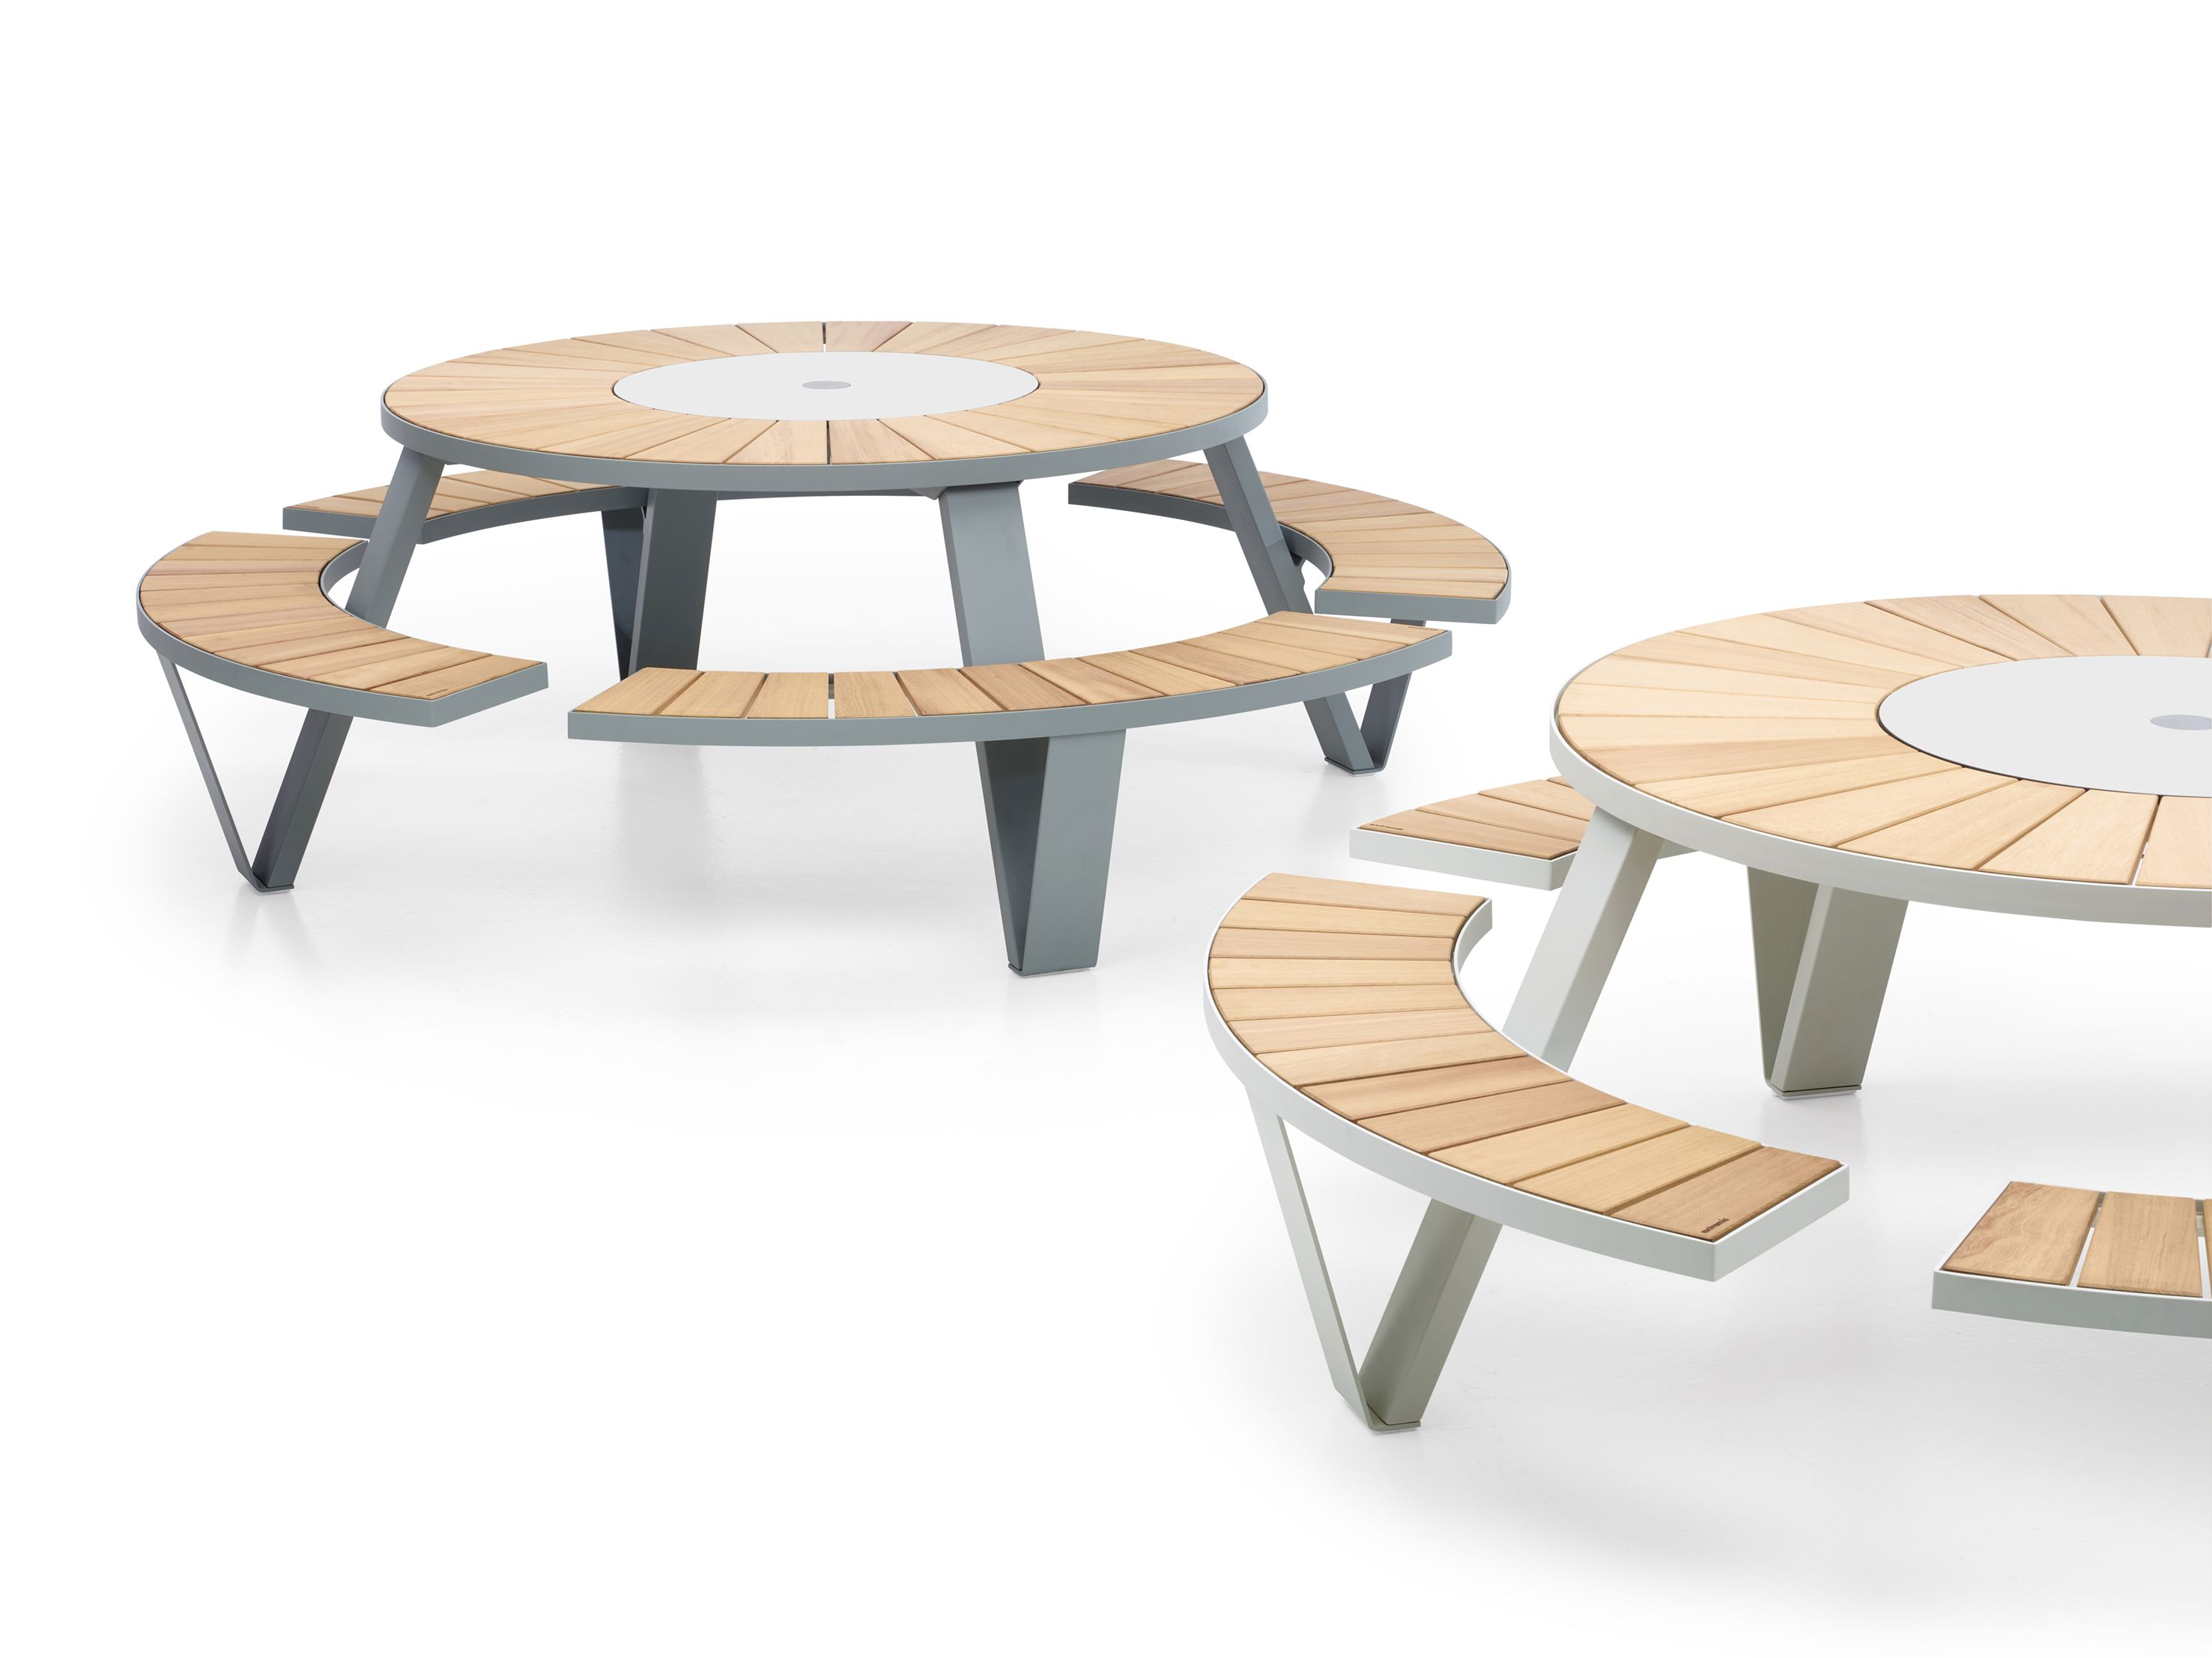 Round canteen table / ORDER NOW AT SPACEIST | City Furniture ...